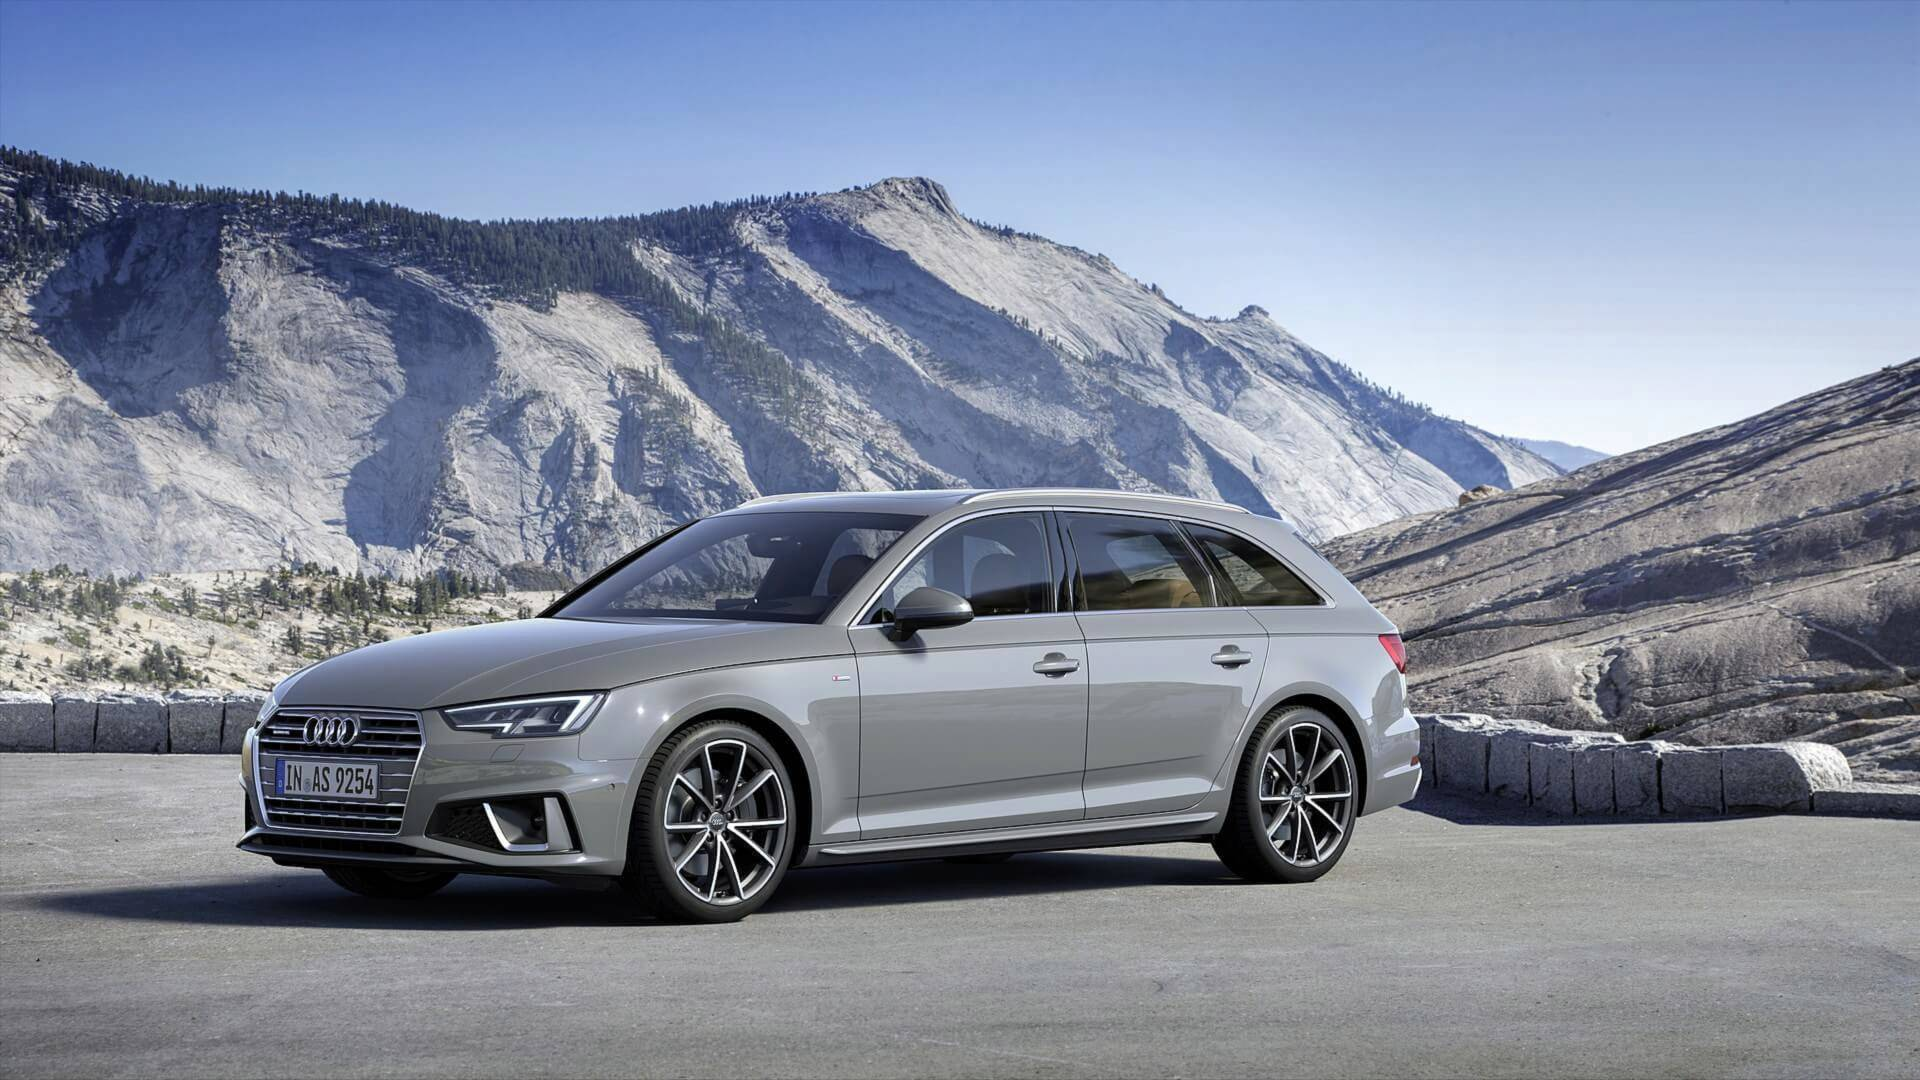 2019 Audi A4 Facelift Doesn't Look All That Different From Before - autoevolution